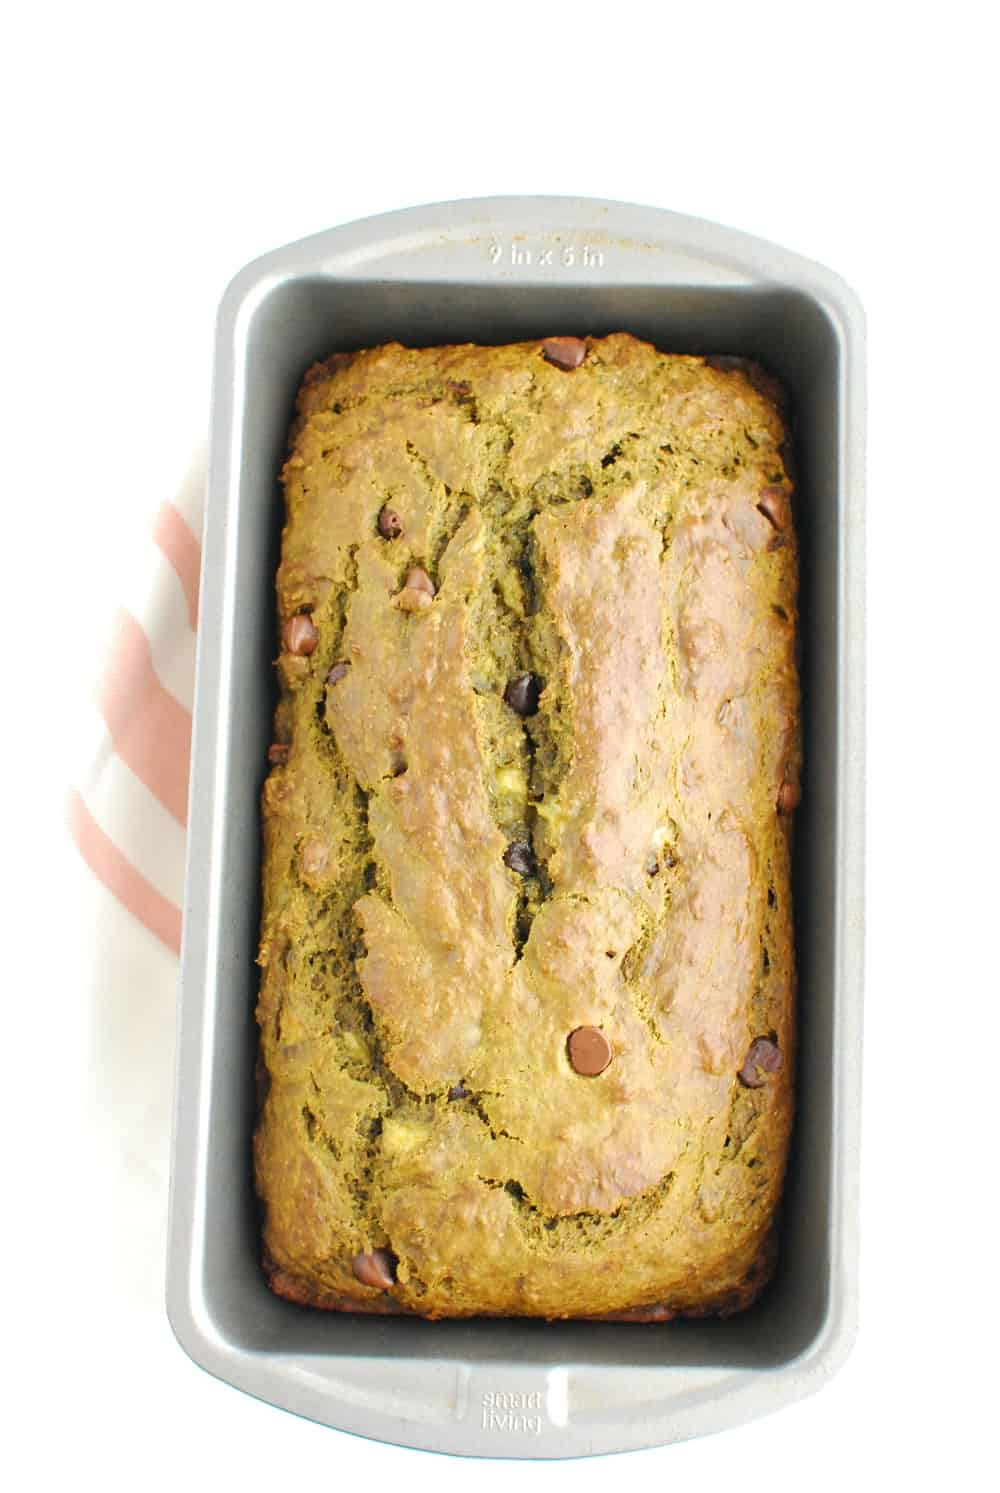 A loaf pan with cooked banana bread.